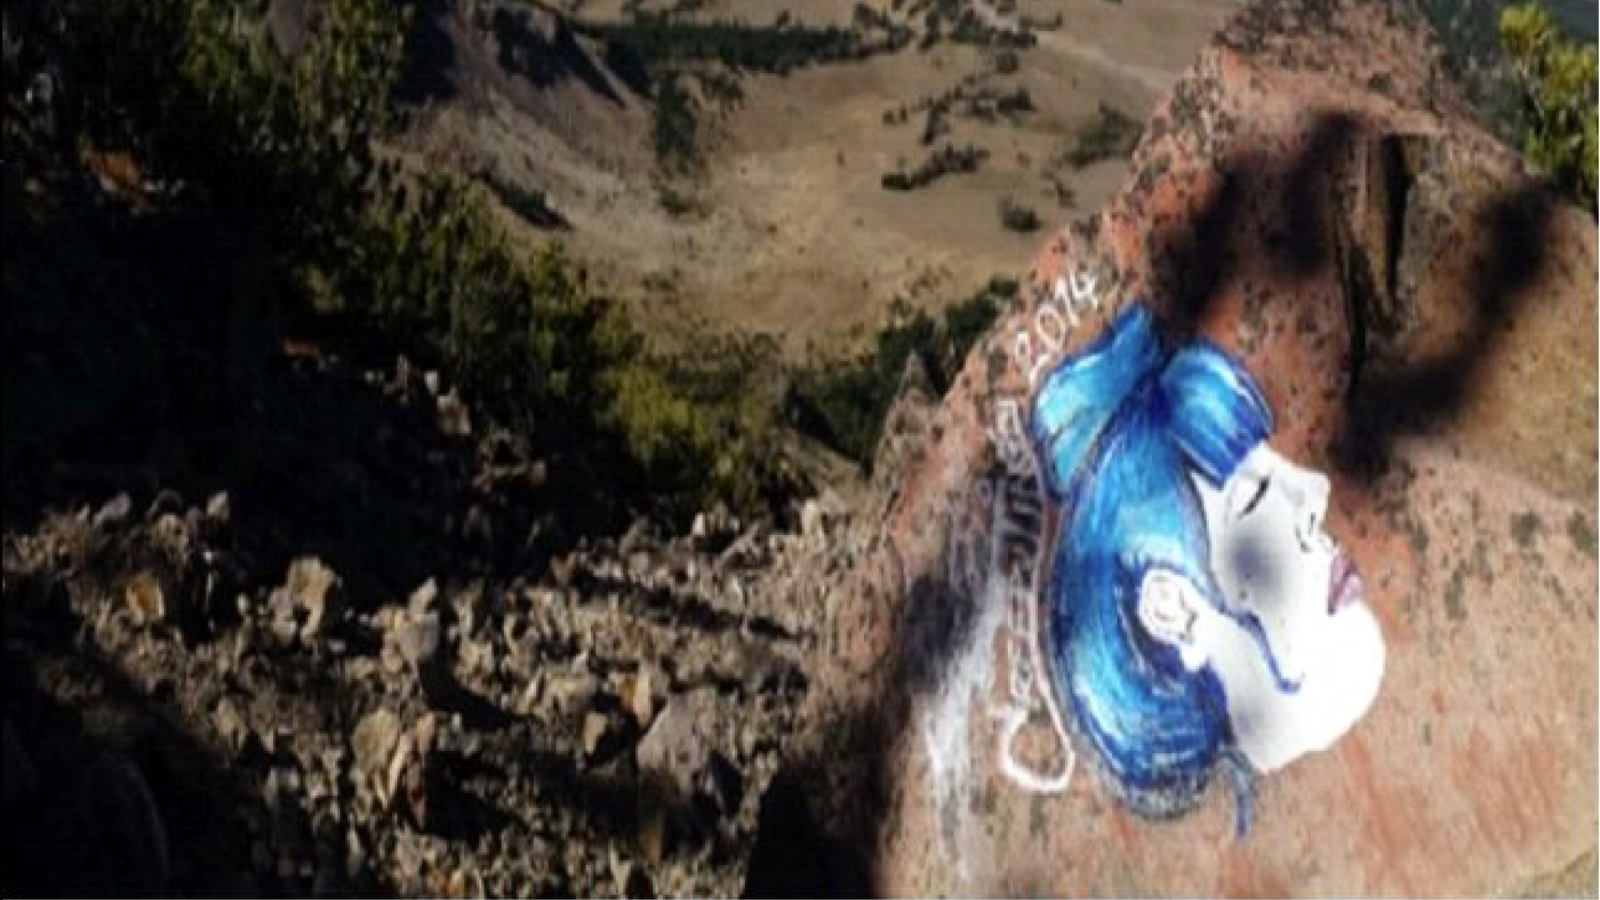 Vandalism at Crater Lake National Park. Image seized by the Investigative Services Branch.